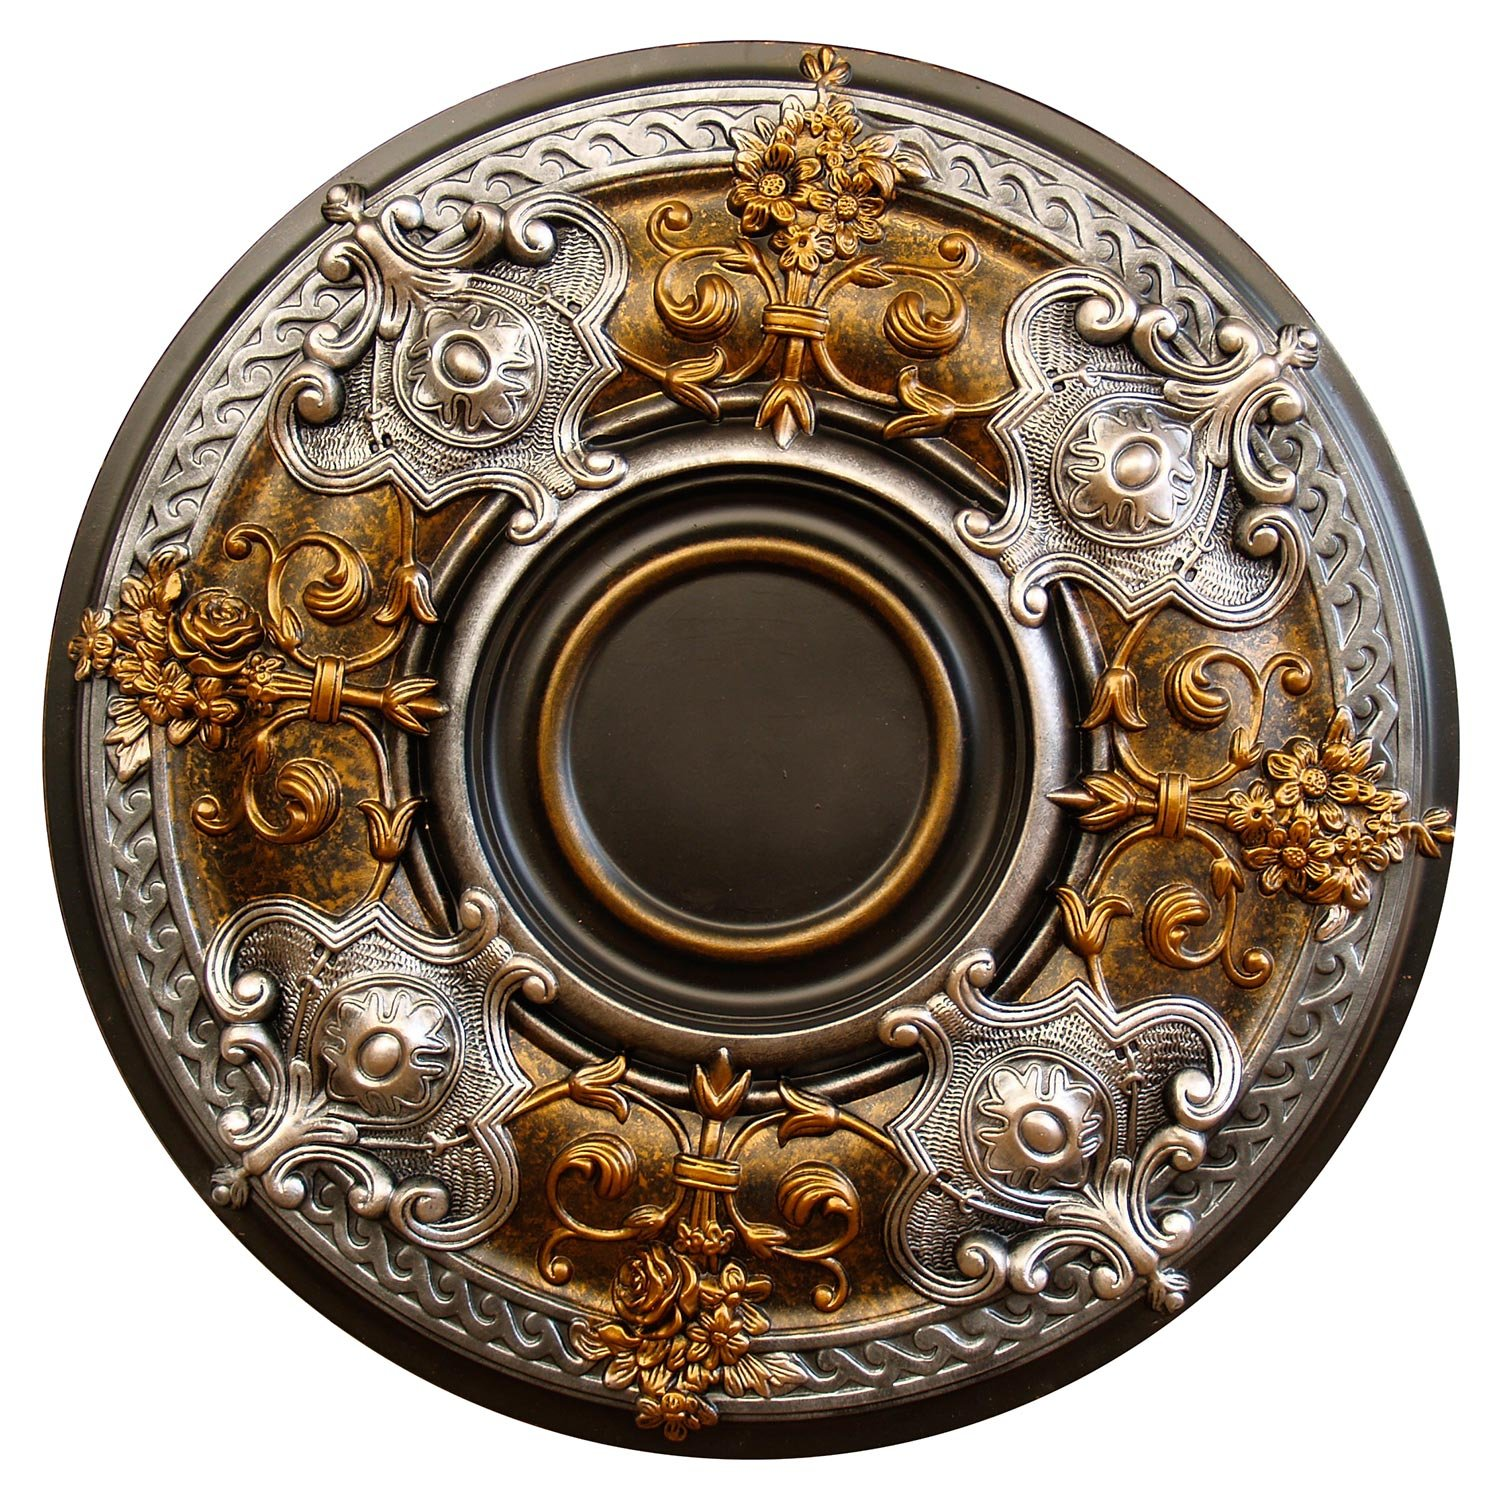 Fine Art Deco ''Dark Platinum'' Hand Painted Ceiling Medallion 28-1/8 In. Finished in Bronze and Silver